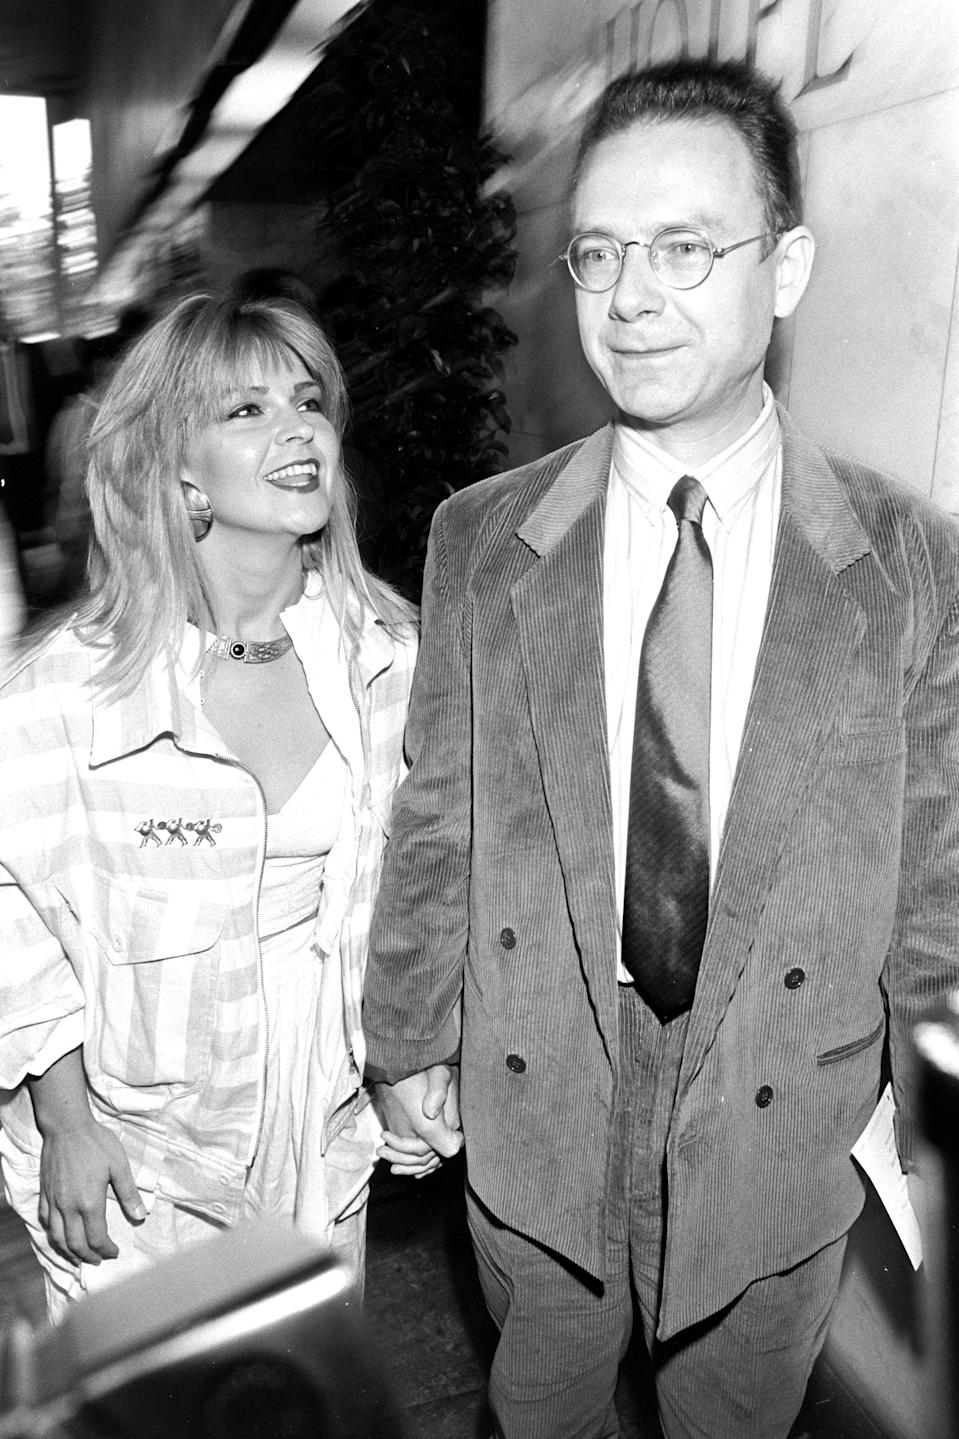 Toyah Willcox and Husband Robert Fripp during the Ivor Novello Awards, 15th April 1987 (Photo by Dave Hogan/Hulton Archive/Getty Images)